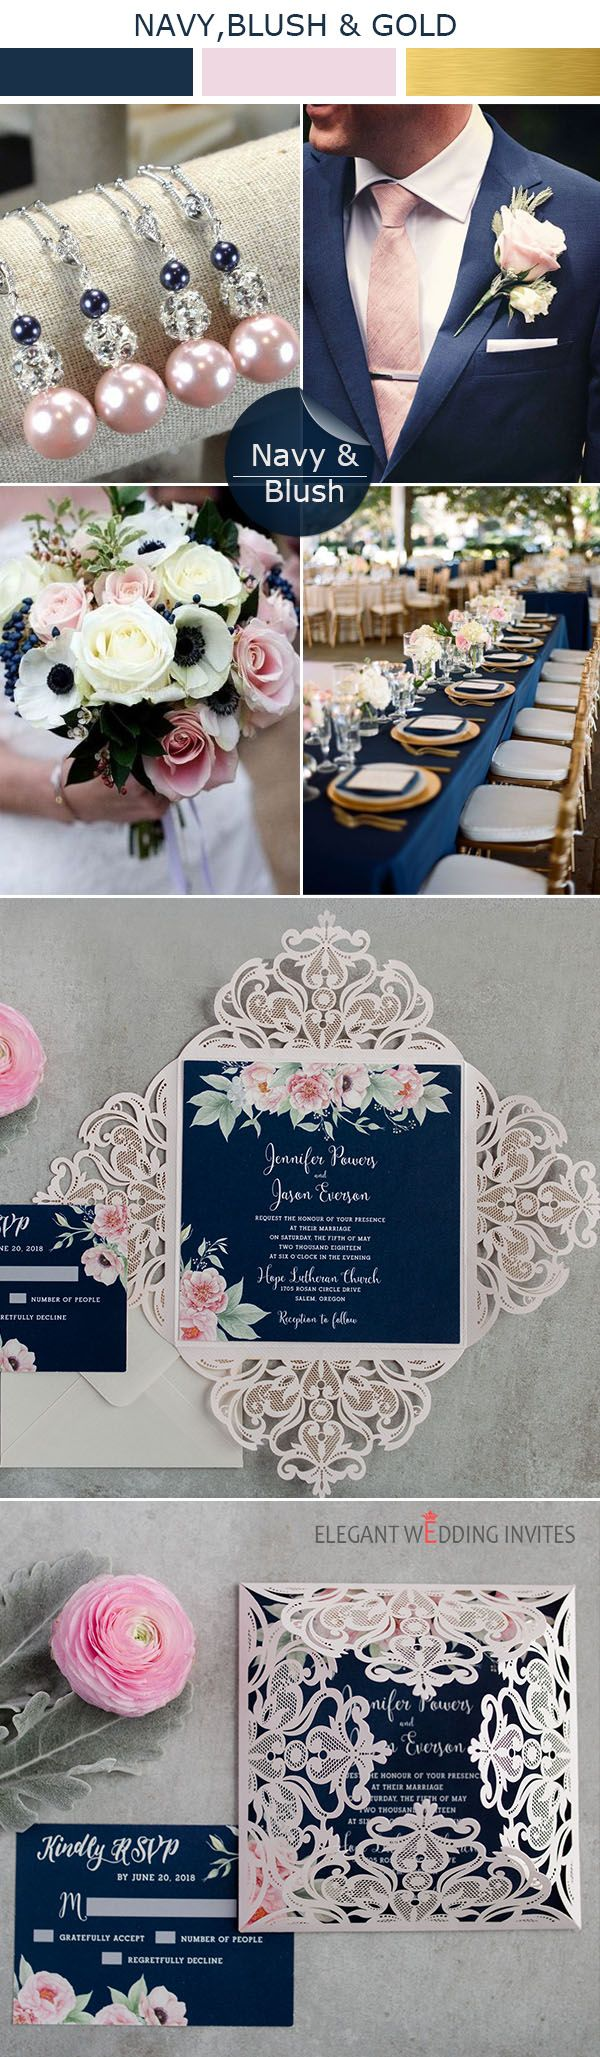 Wedding decorations at church november 2018 Gorgeous navy blue and blush pink floral watercolor wedding